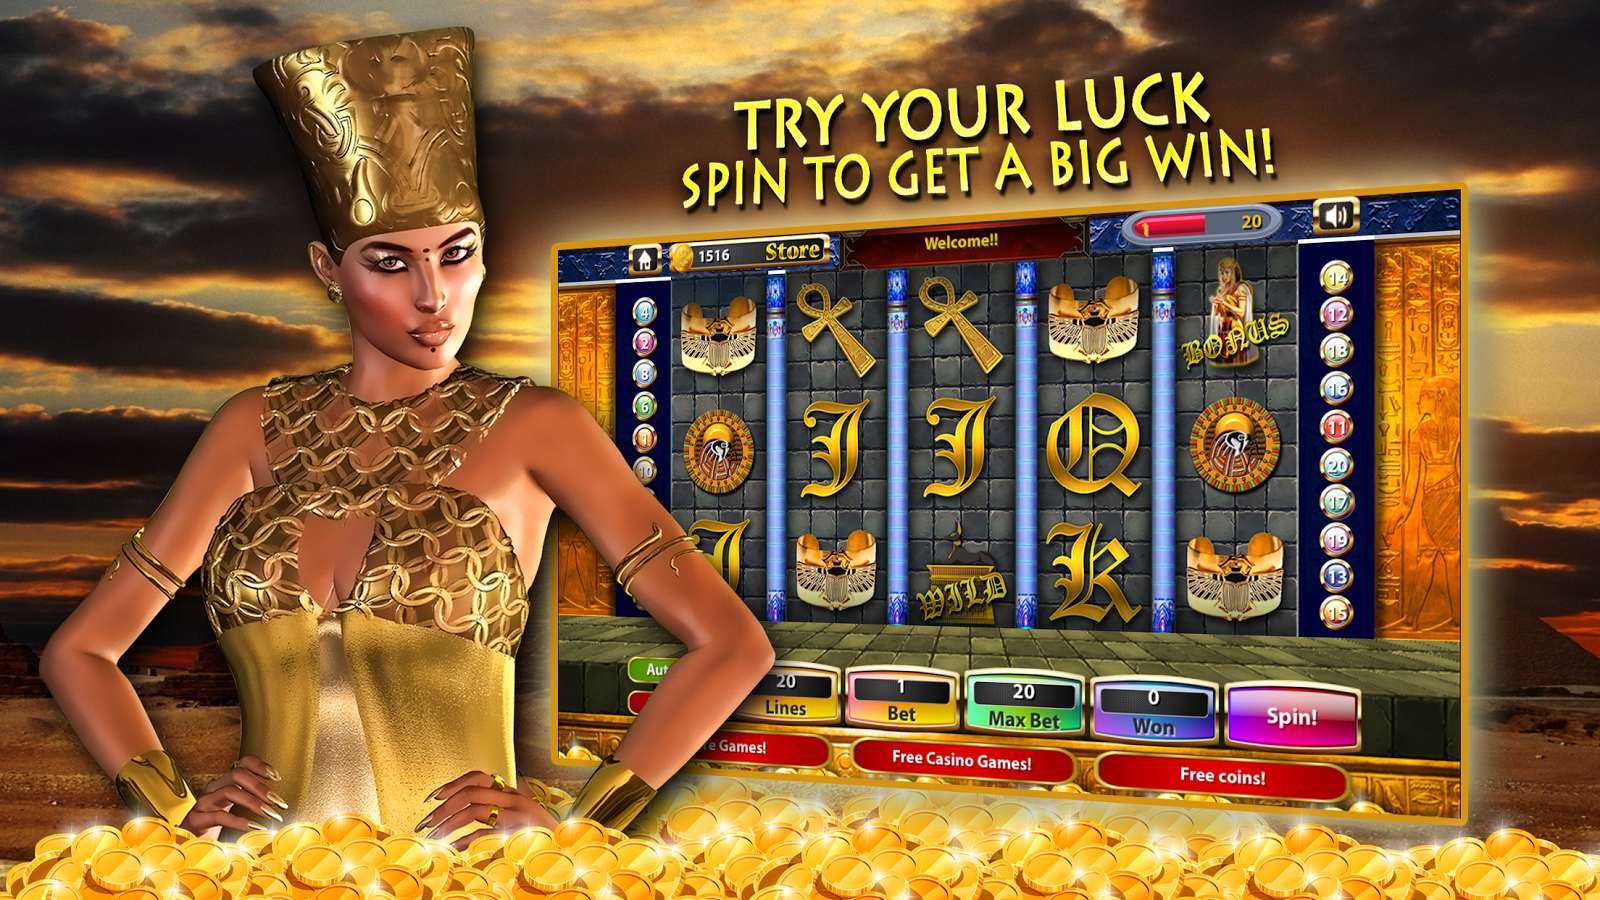 Bollywood Bonanza Slot - Win Big Playing Online Casino Games